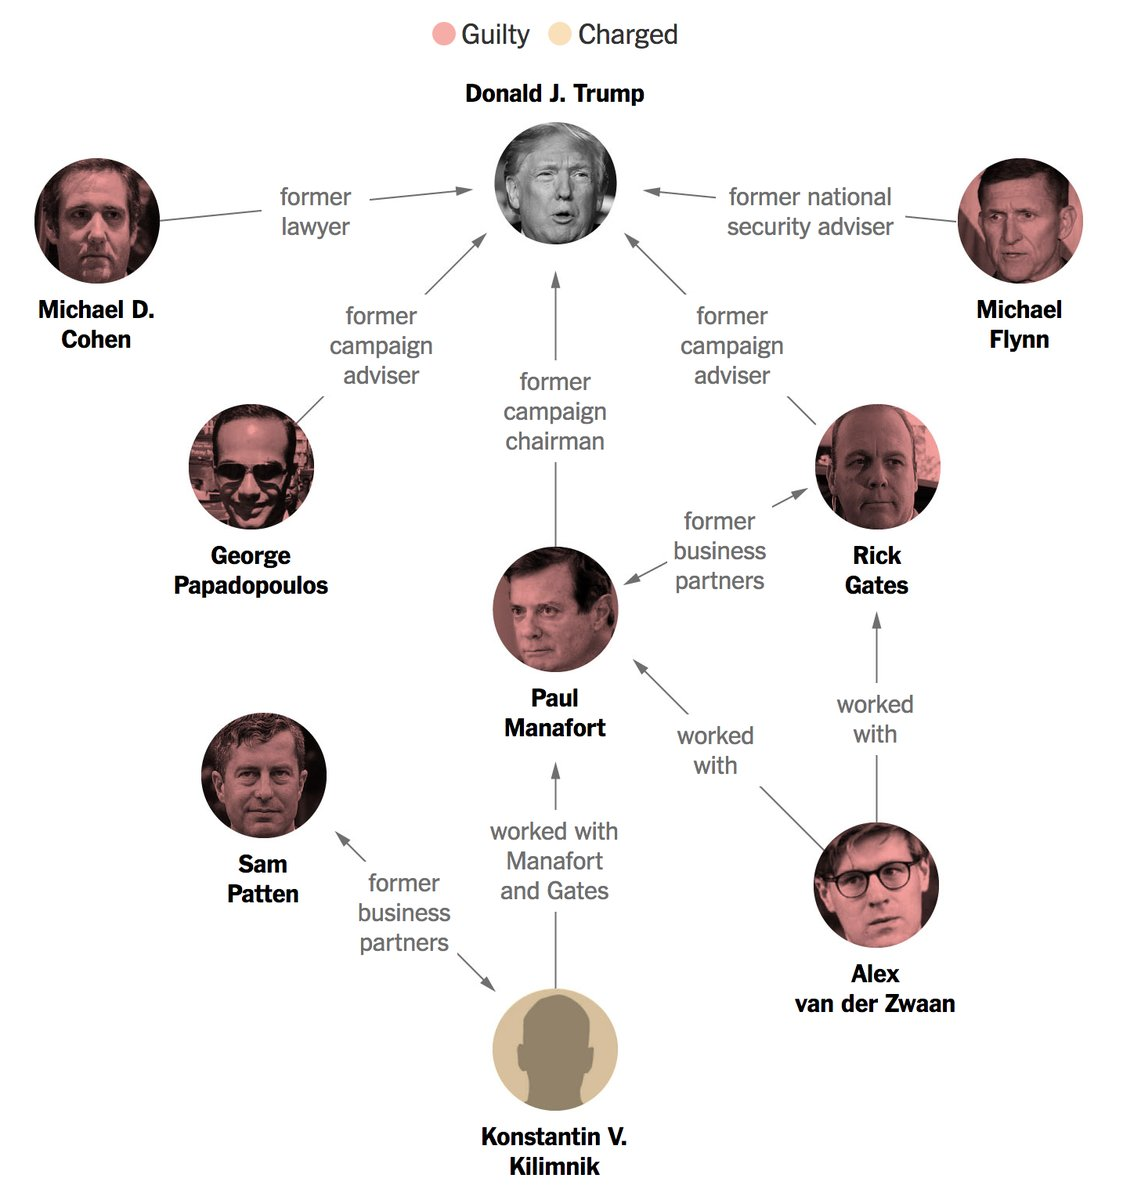 How those charged or found guilty in the Mueller investigation are connected to President Trump https://t.co/gHjLFF0Pzu